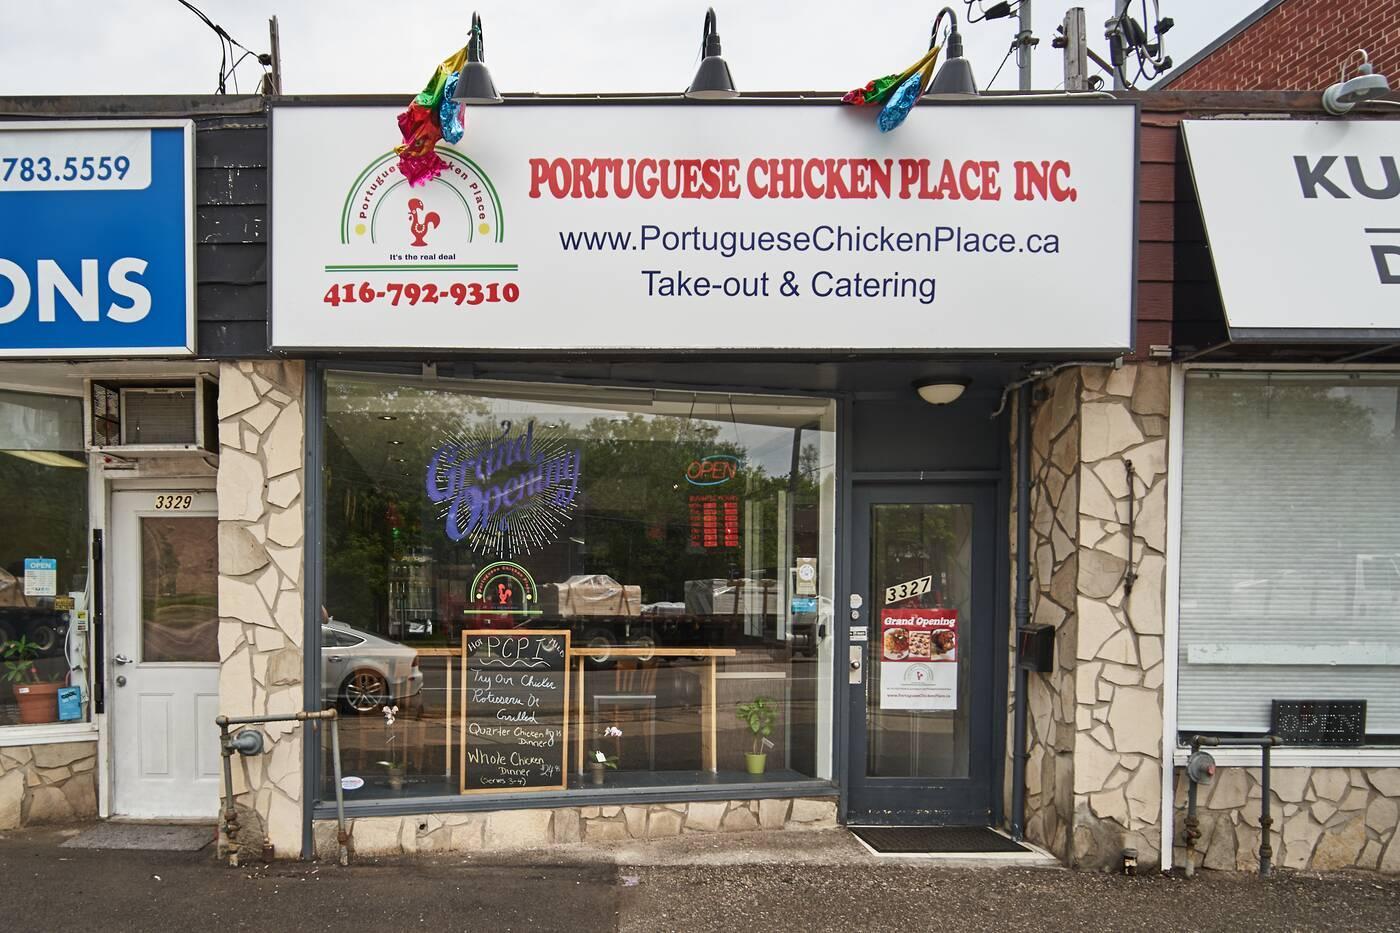 Portuguese Chicken Place Toronto